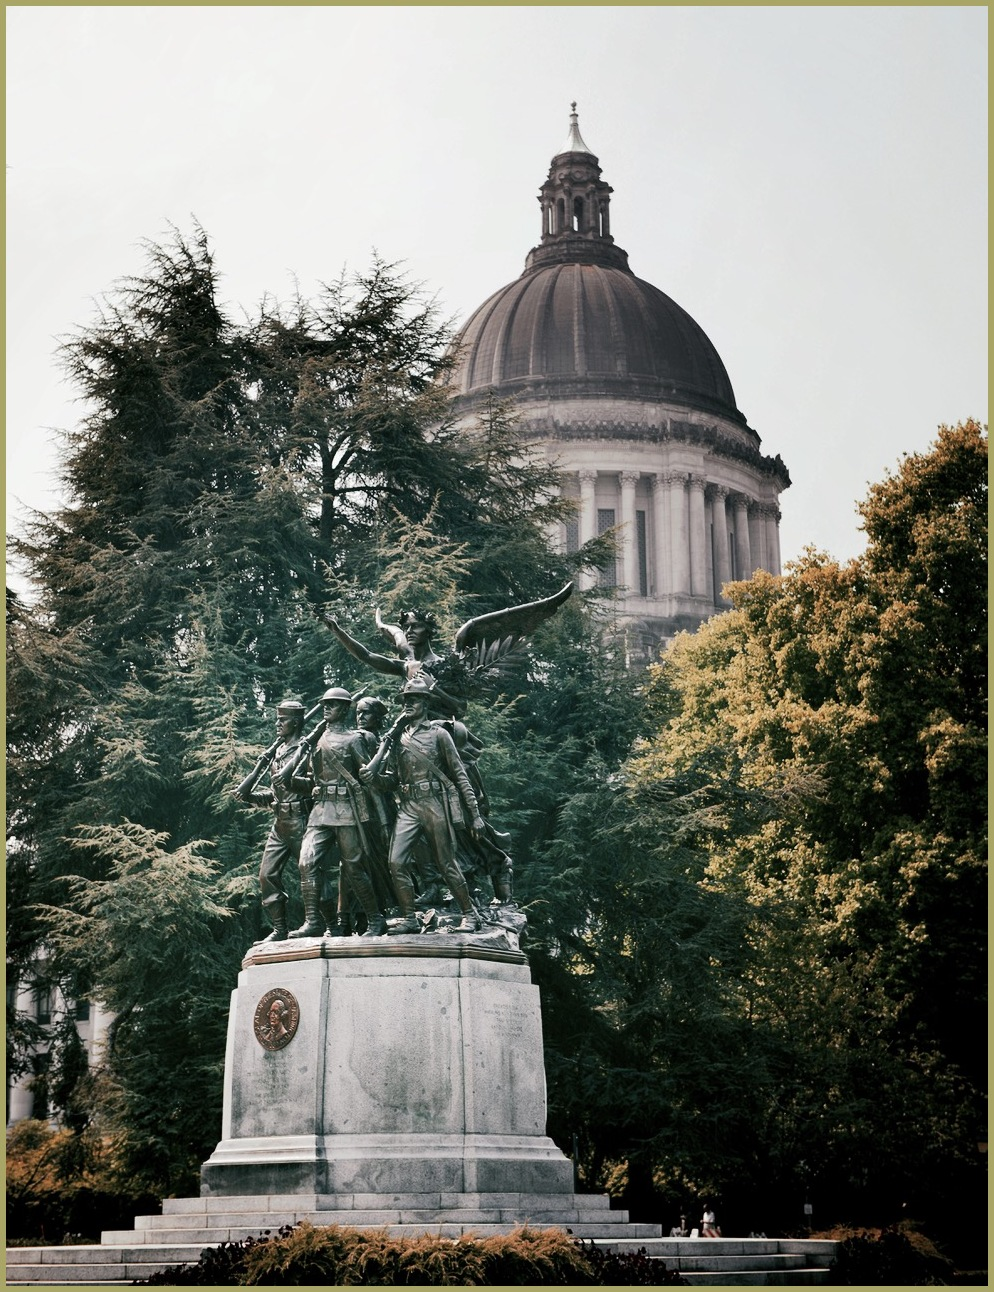 Monument and Capital - Olympia, Washington